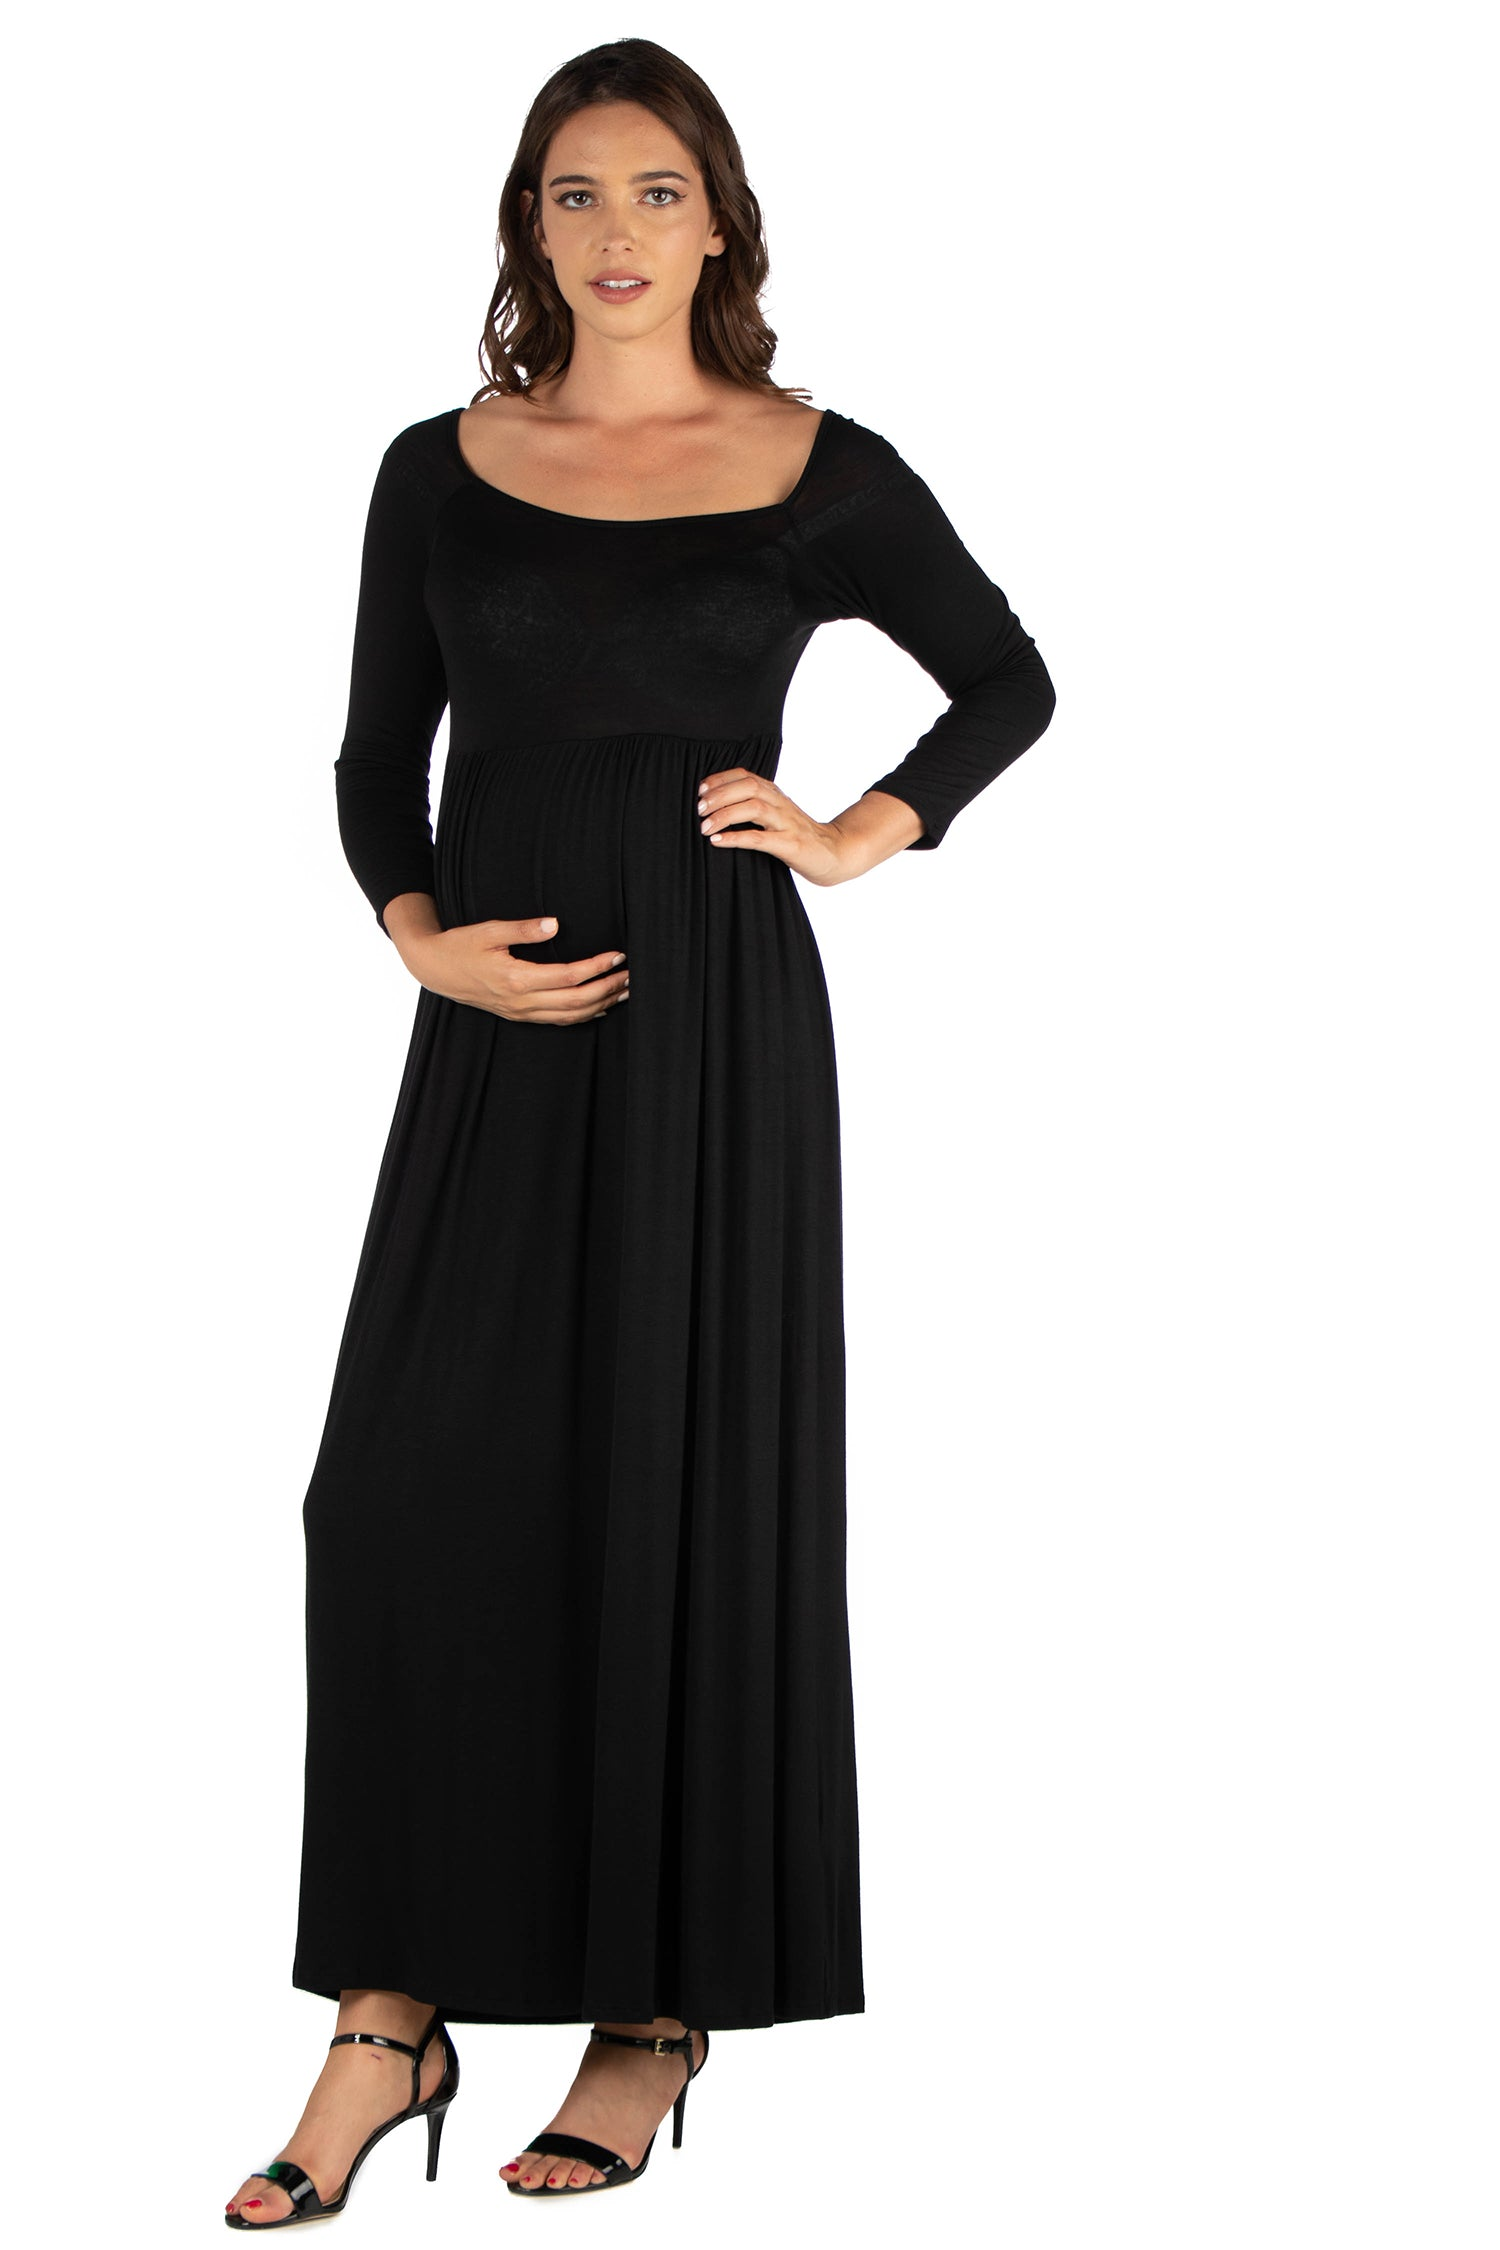 24seven Comfort Apparel Empire Waist Long Sleeve Maternity Maxi Dress-DRESSES-24Seven Comfort Apparel-BLACK-1X-24/7 Comfort Apparel